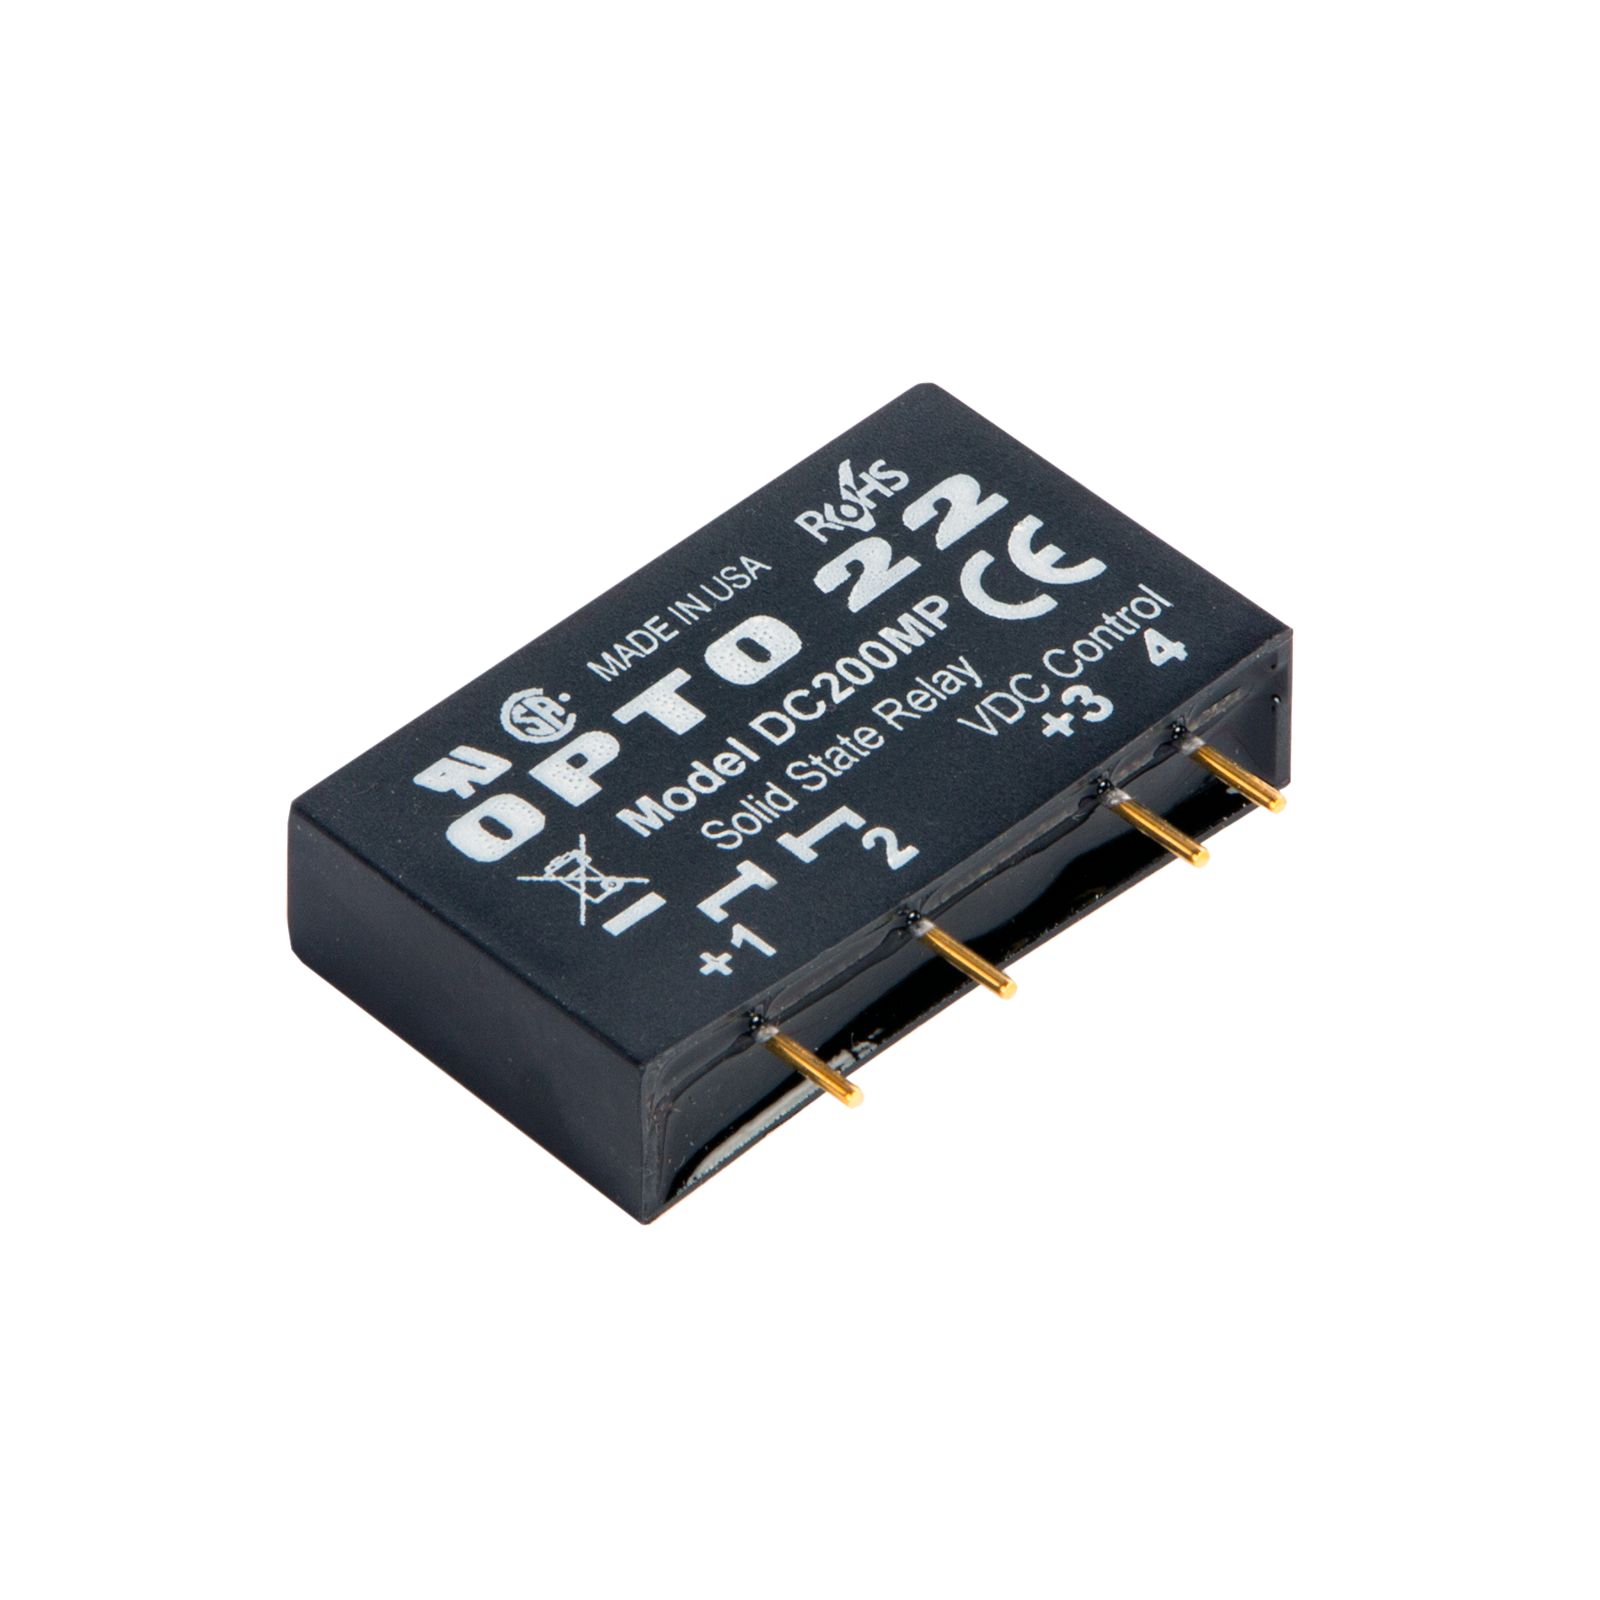 Opto22 Dc200mp Mp Model 200 Vdc 1 Amp Dc Control Solid State Relay Switch Lifetime Previous